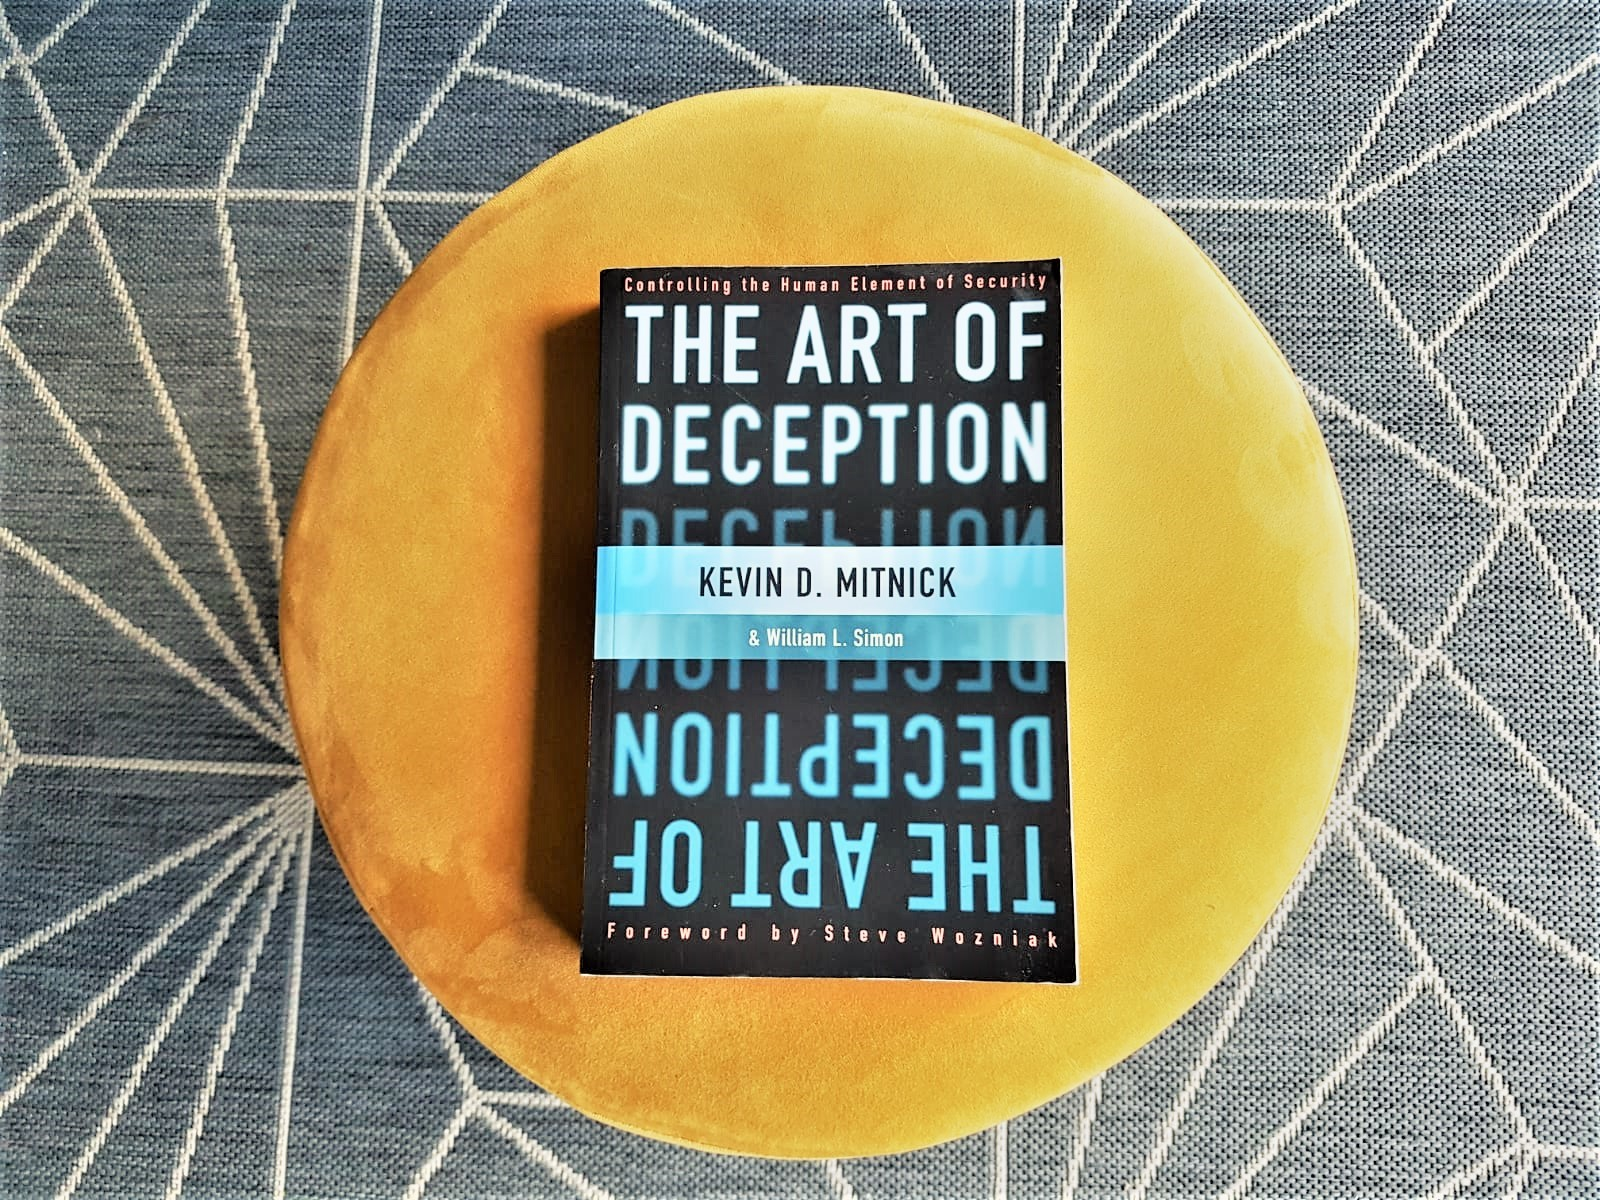 The Art of Deception Mitnick